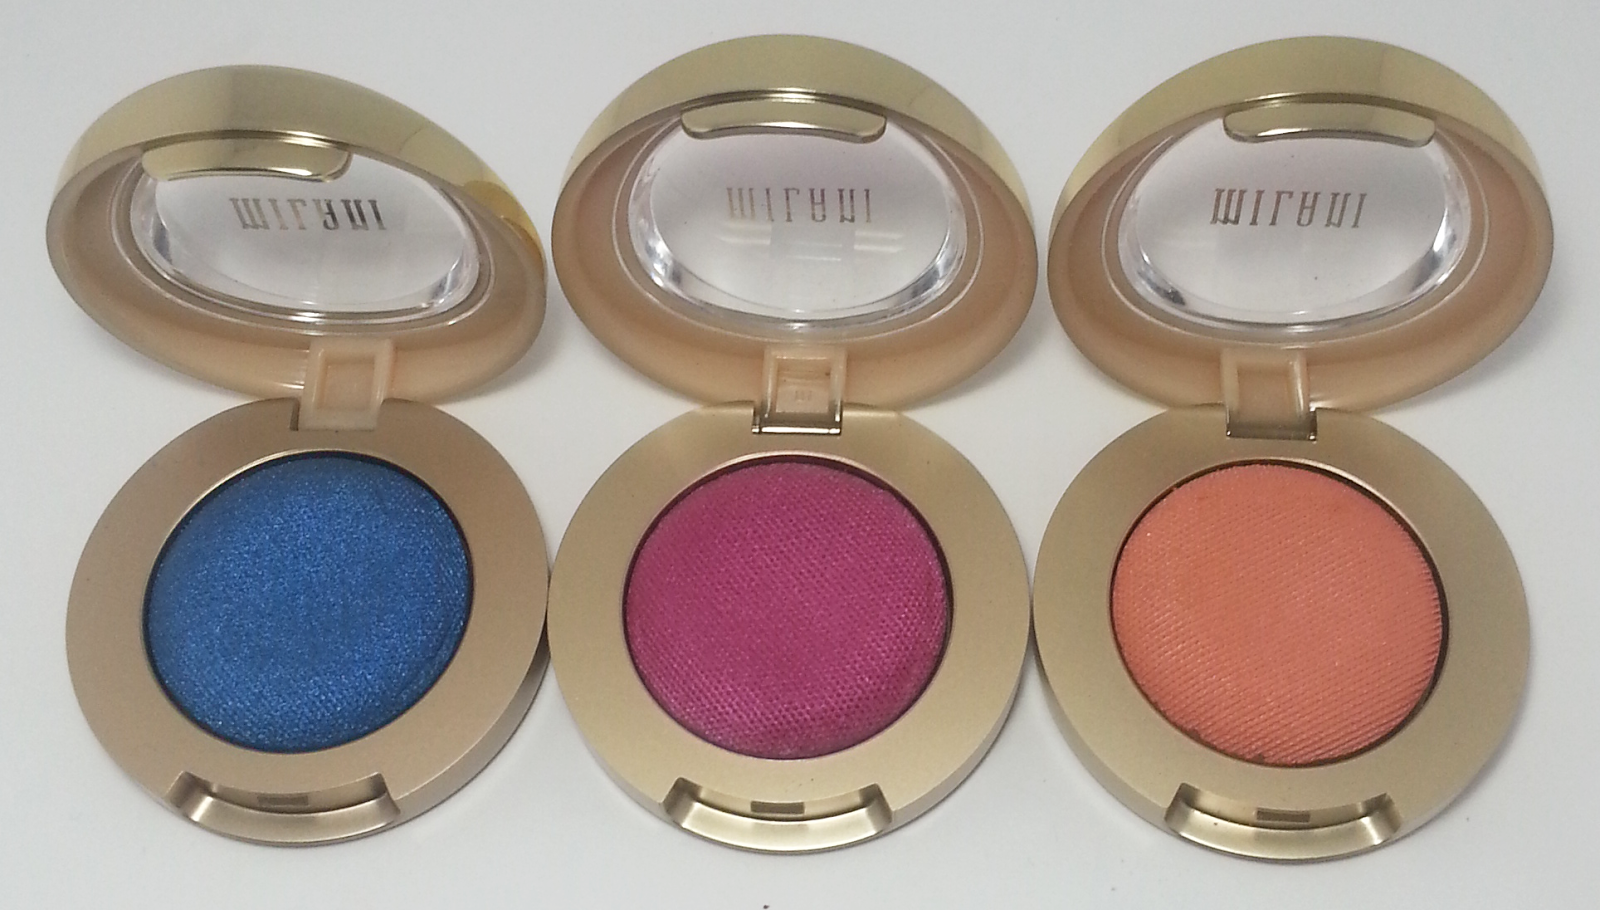 Milani Bella Eyes Gel Powder Eye Shadow - Cobalt - Fuchsia - Mandarin | Kat Stays Polished